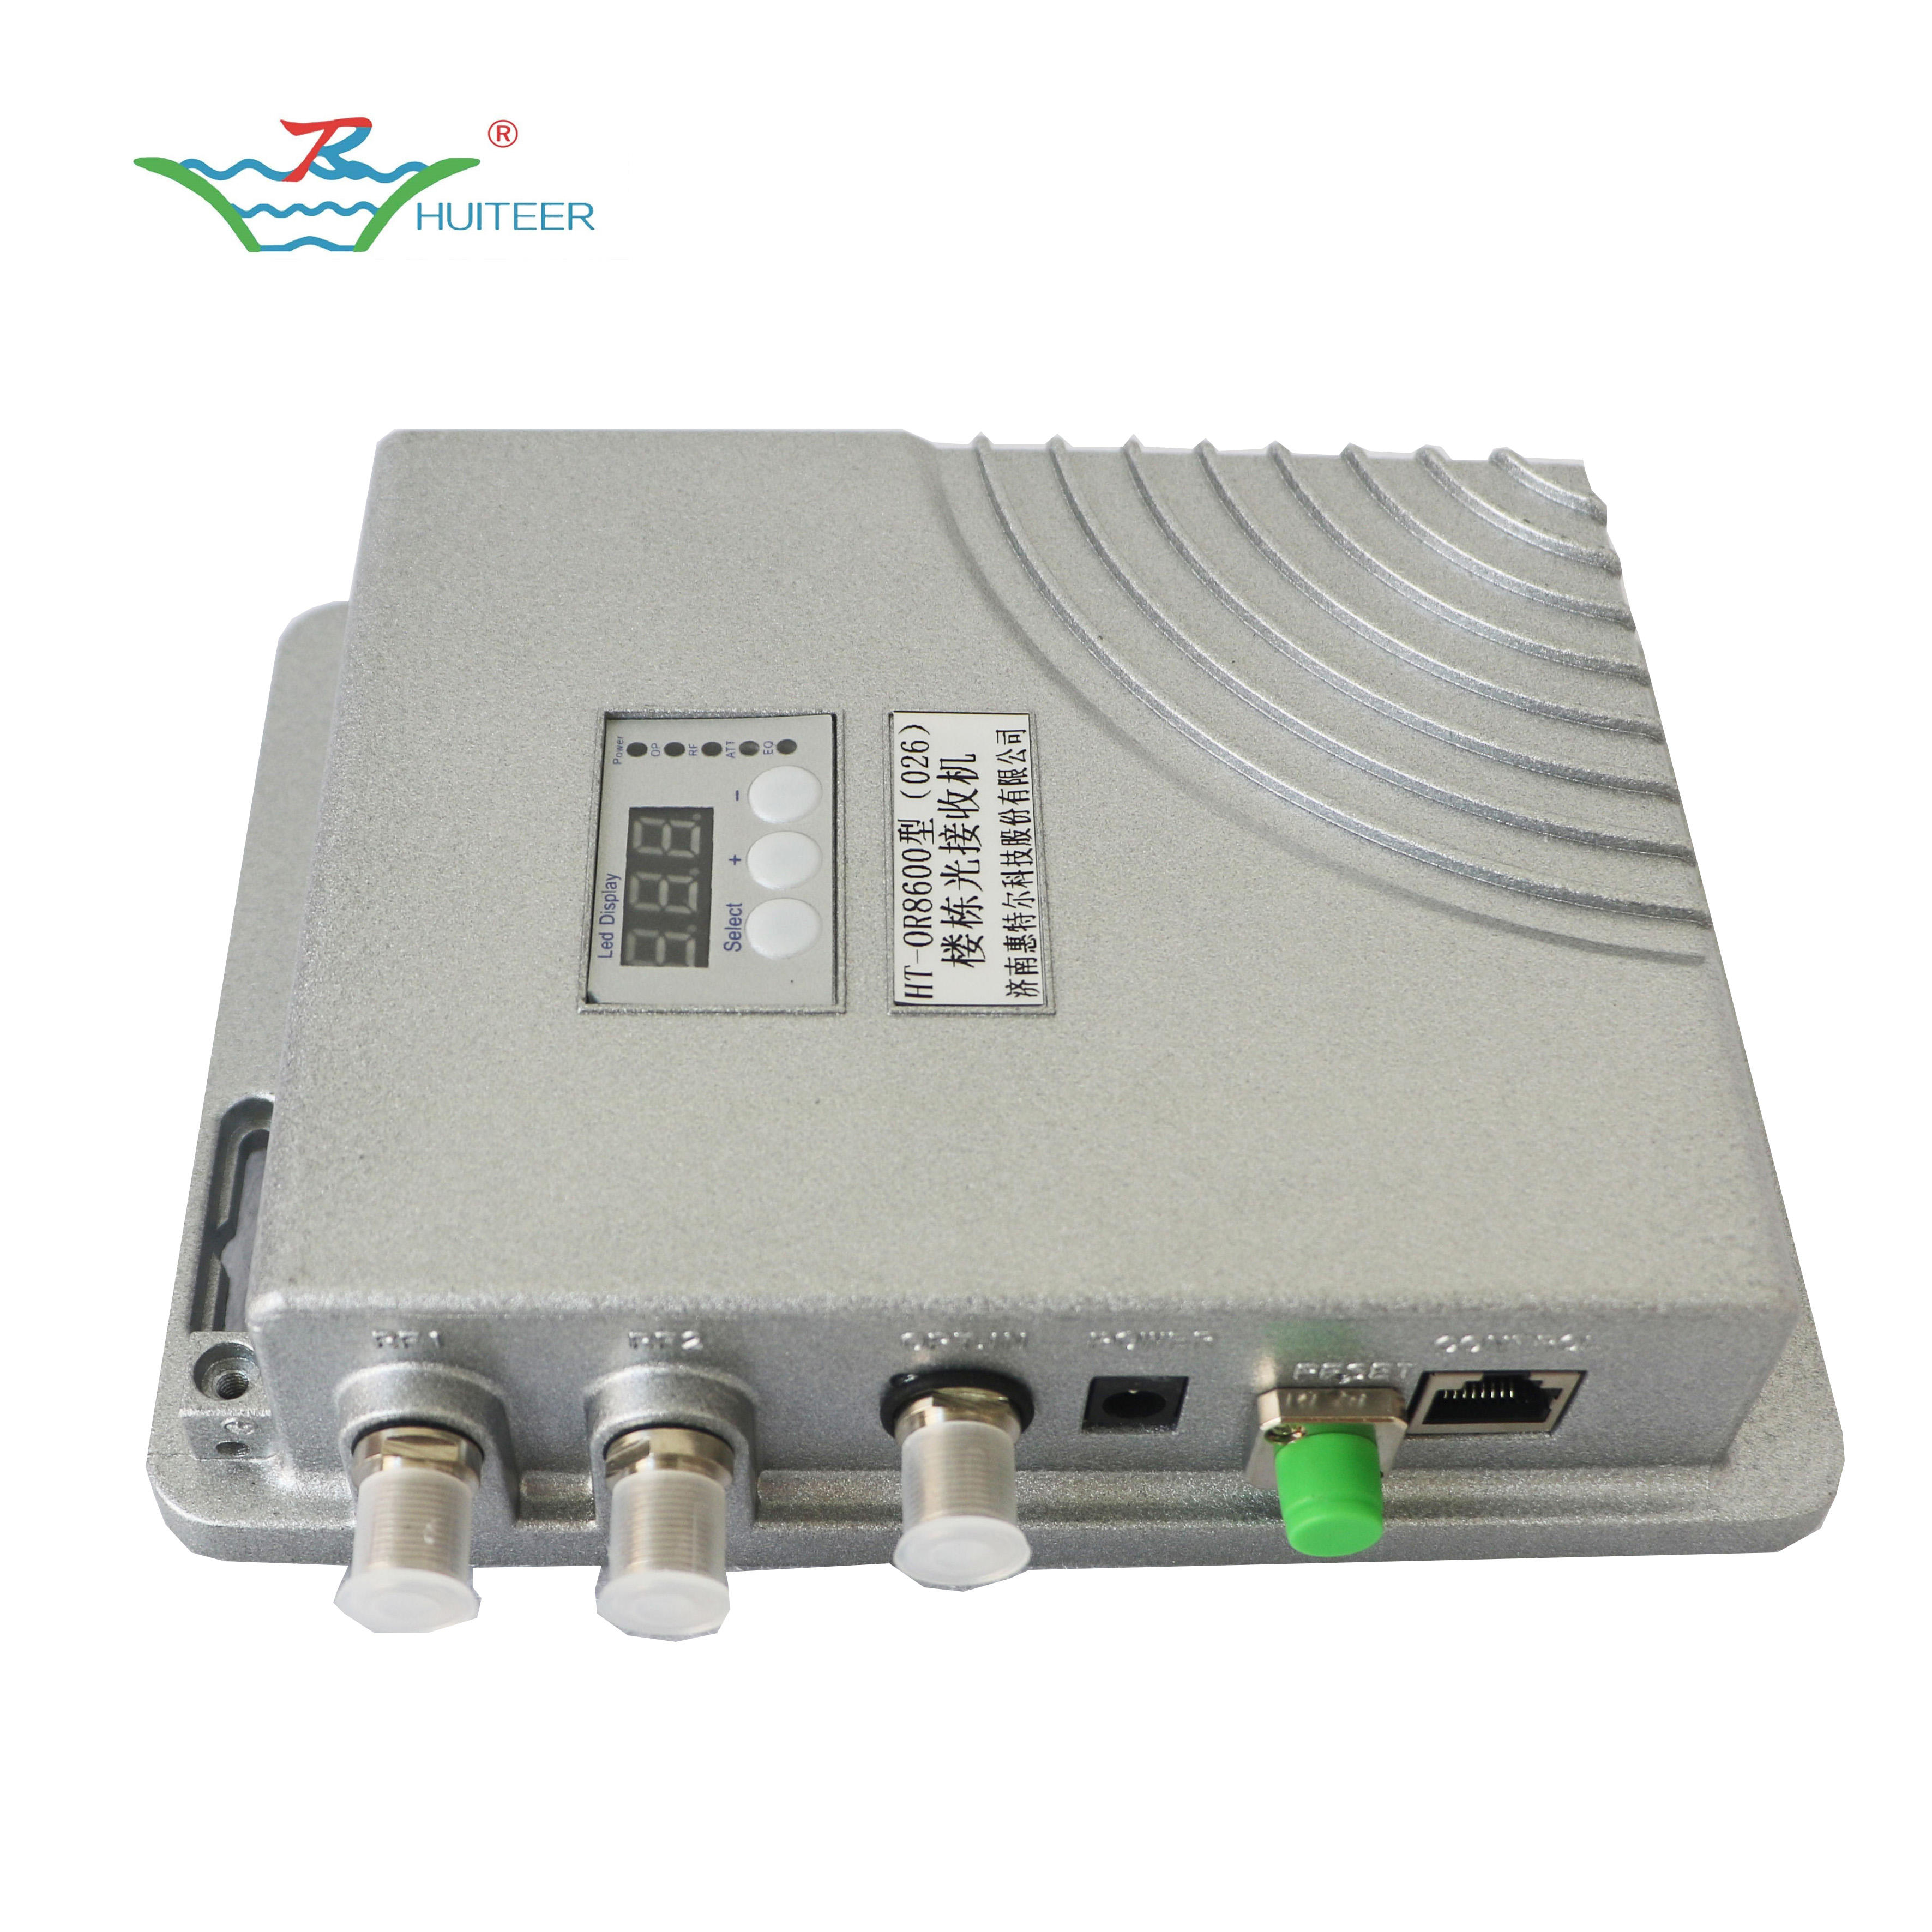 New style AGC FTTB CATV Optical Receiver with snmp and numerical control